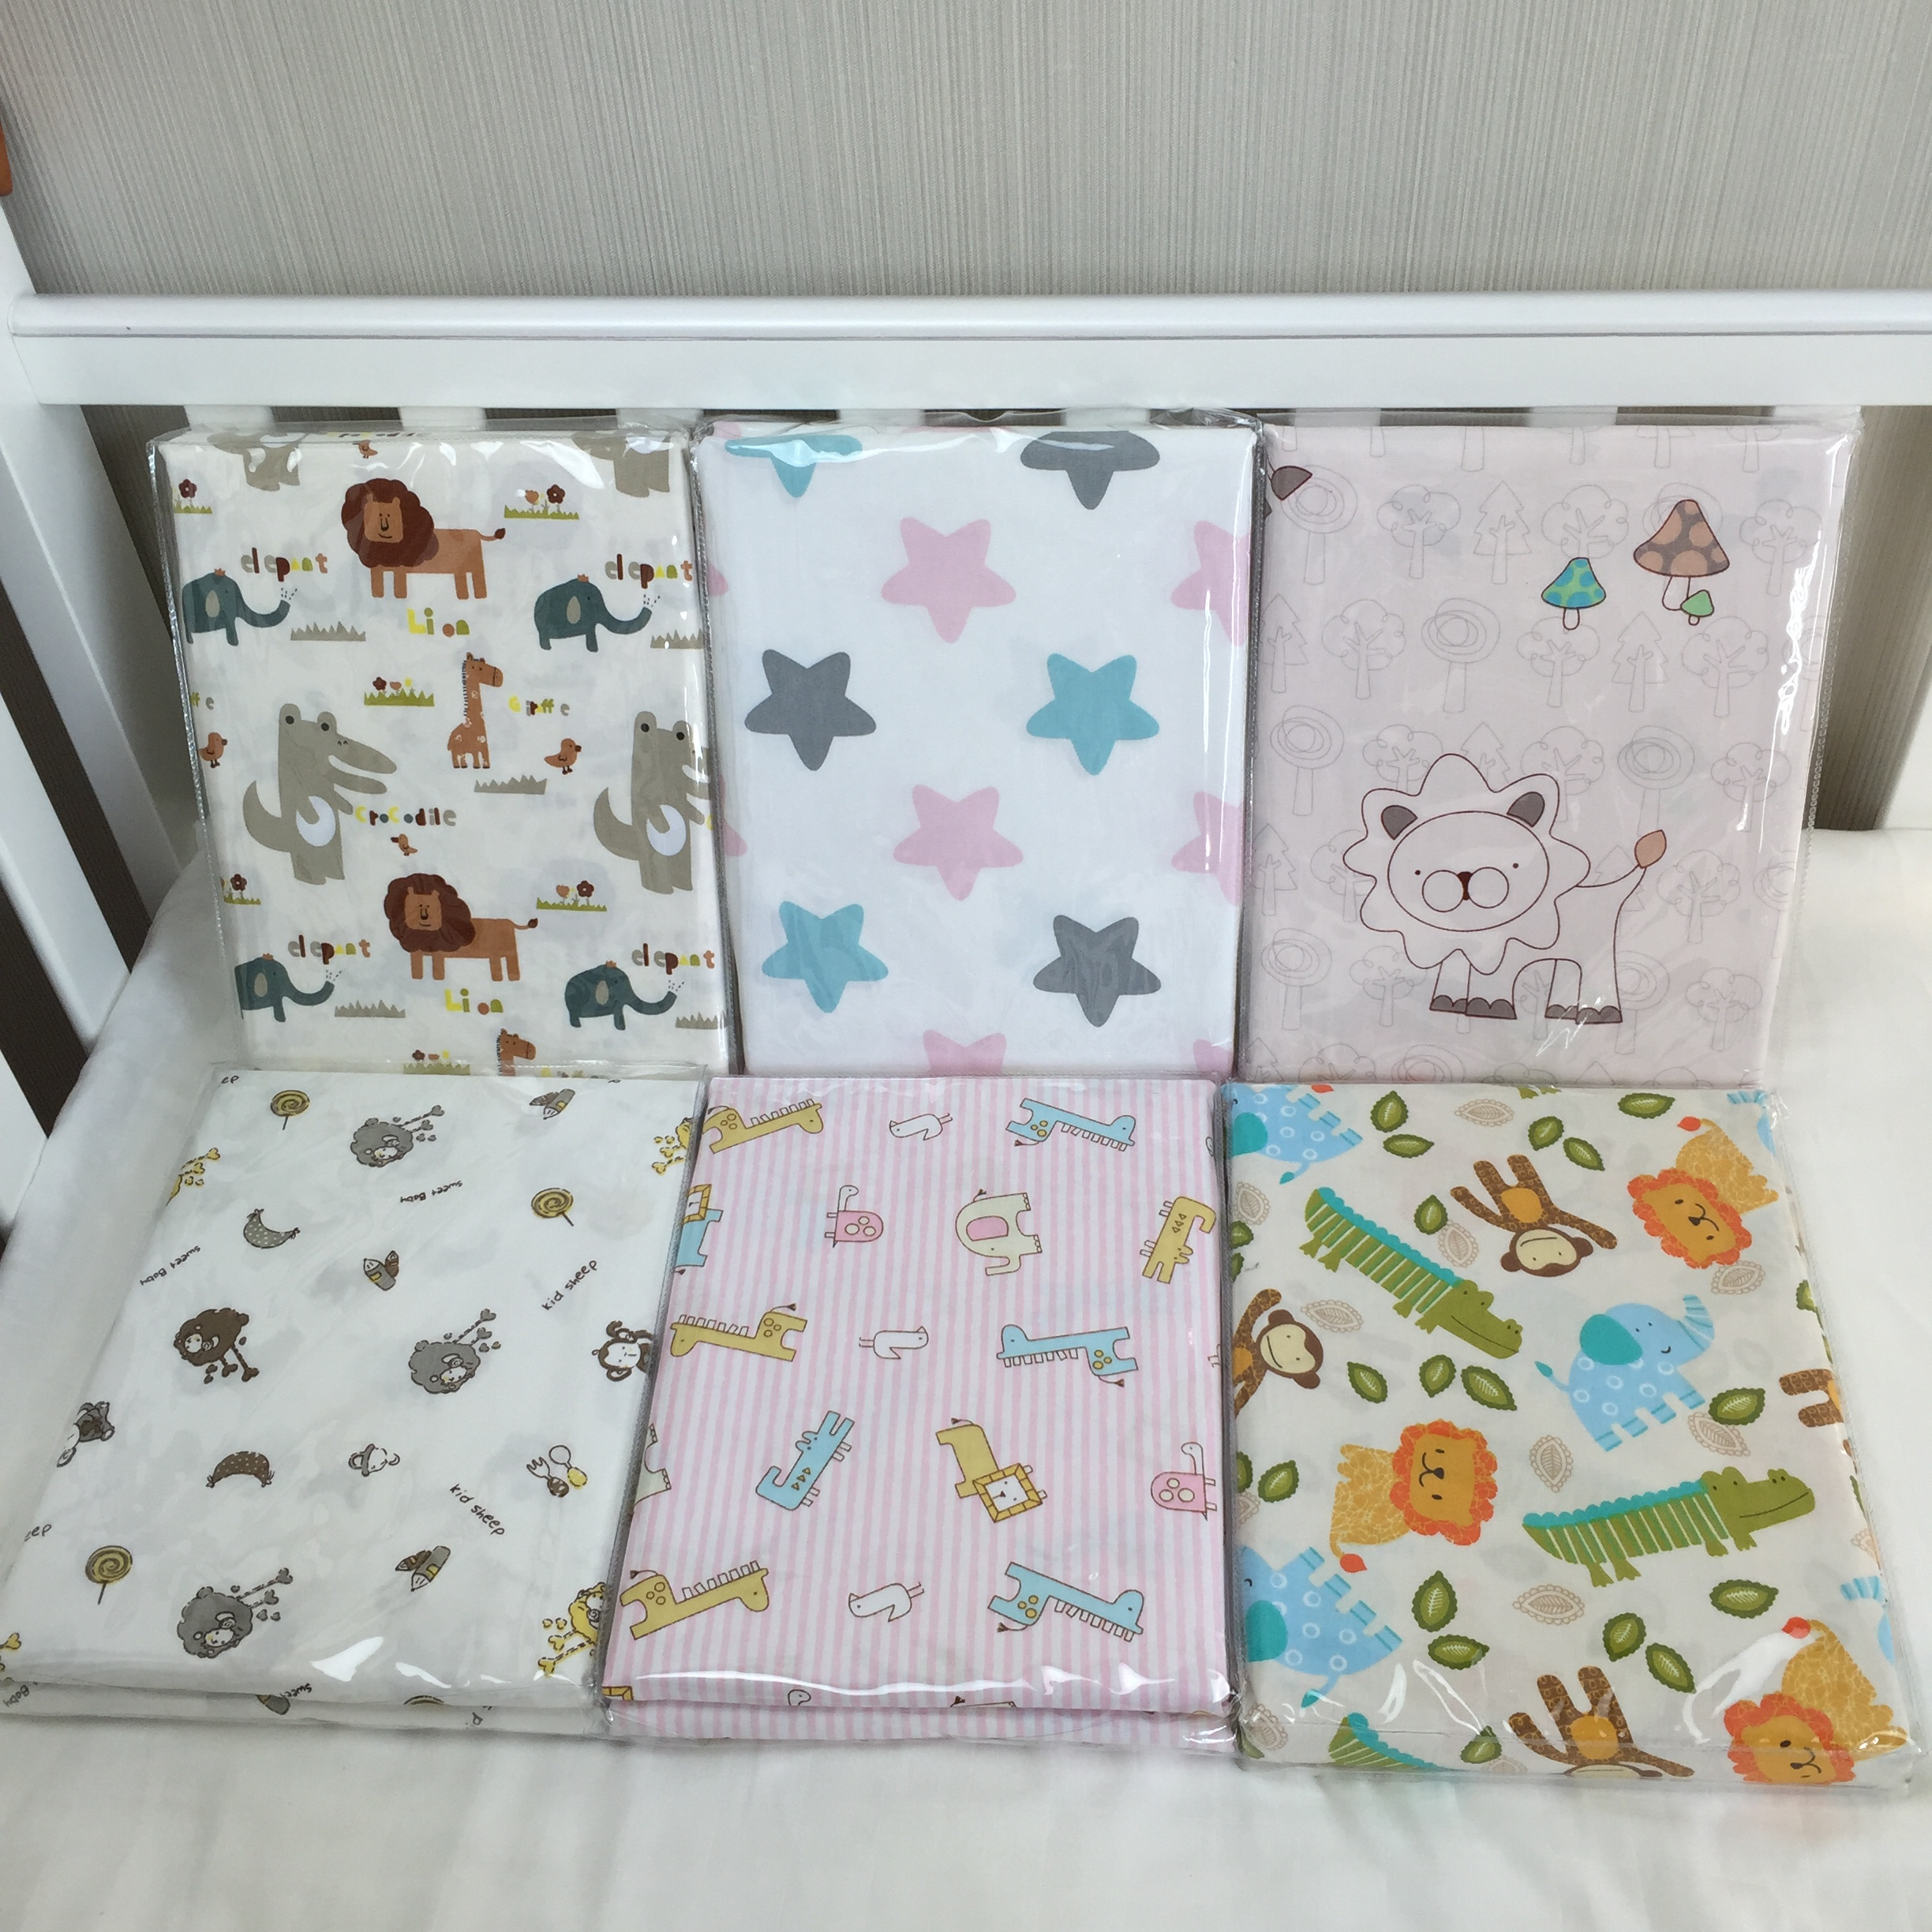 Bed sheet pattern - Baby Sheets Bed Newborn Cotton Cartoon Pattern Natural Printing Bed Sheets Children Favorite Comfort Crib Sheets Bedding In Sheets From Mother Kids On